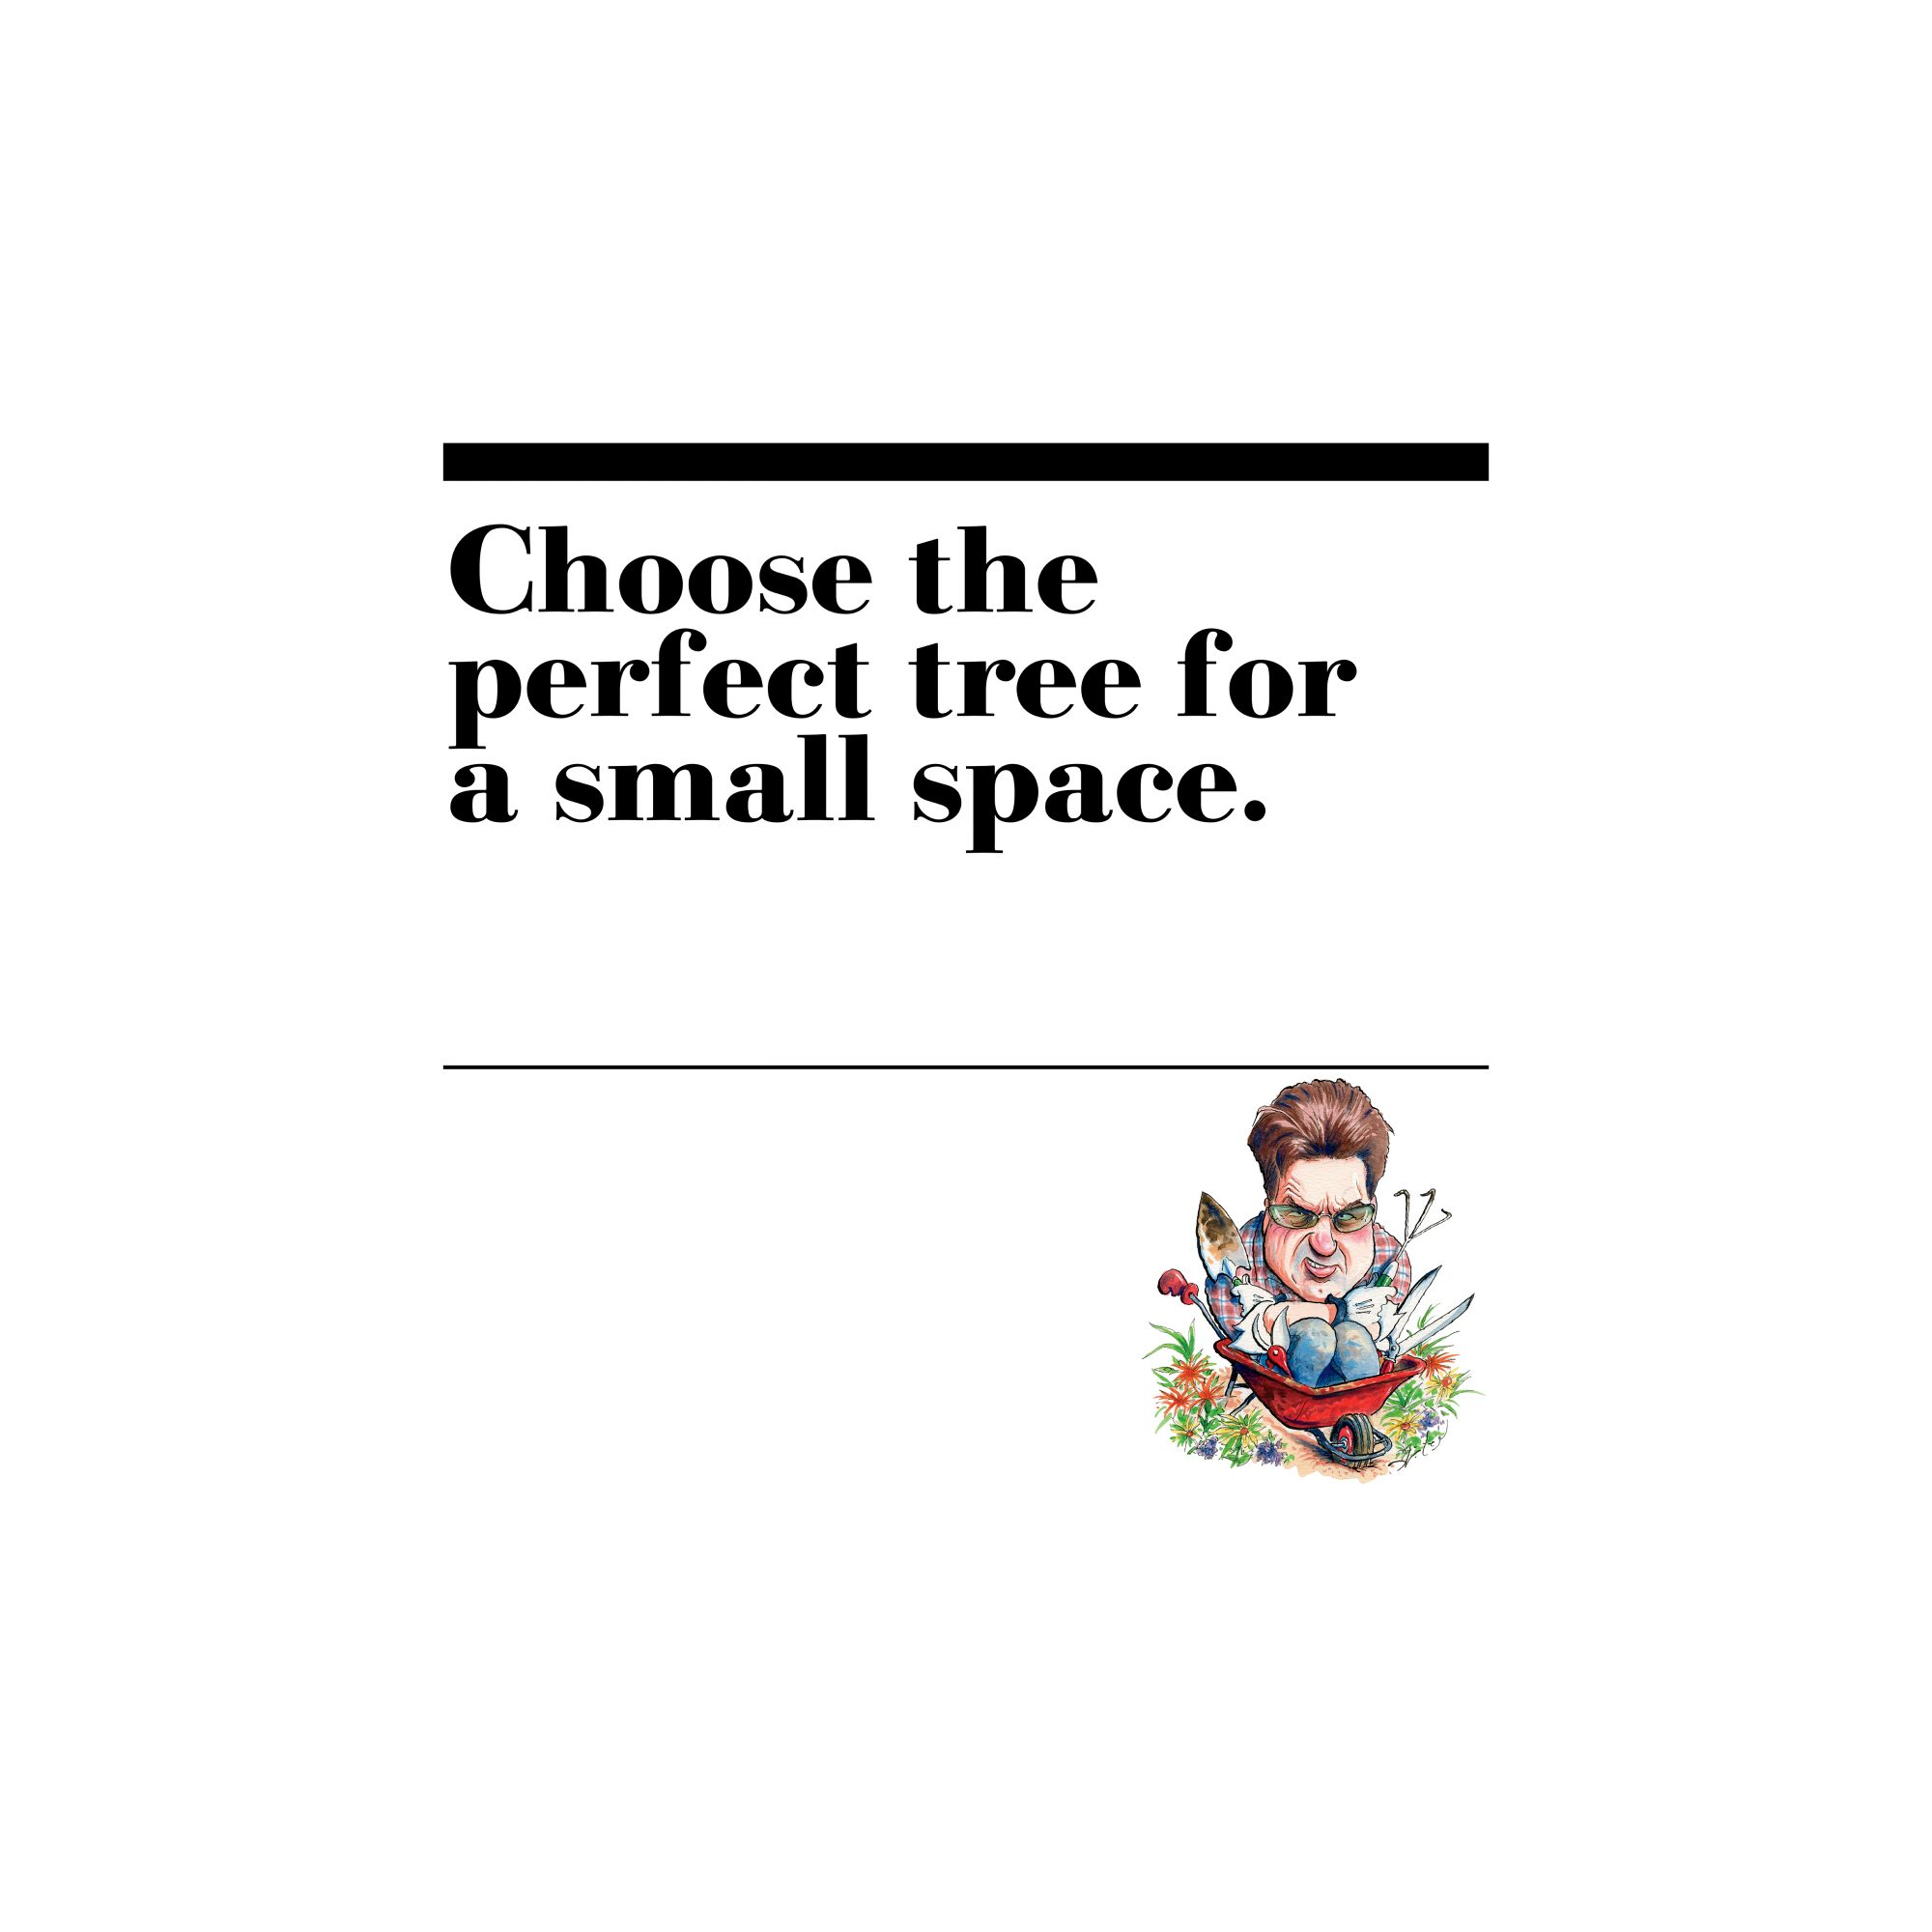 22. Choose the perfect tree for a small space.